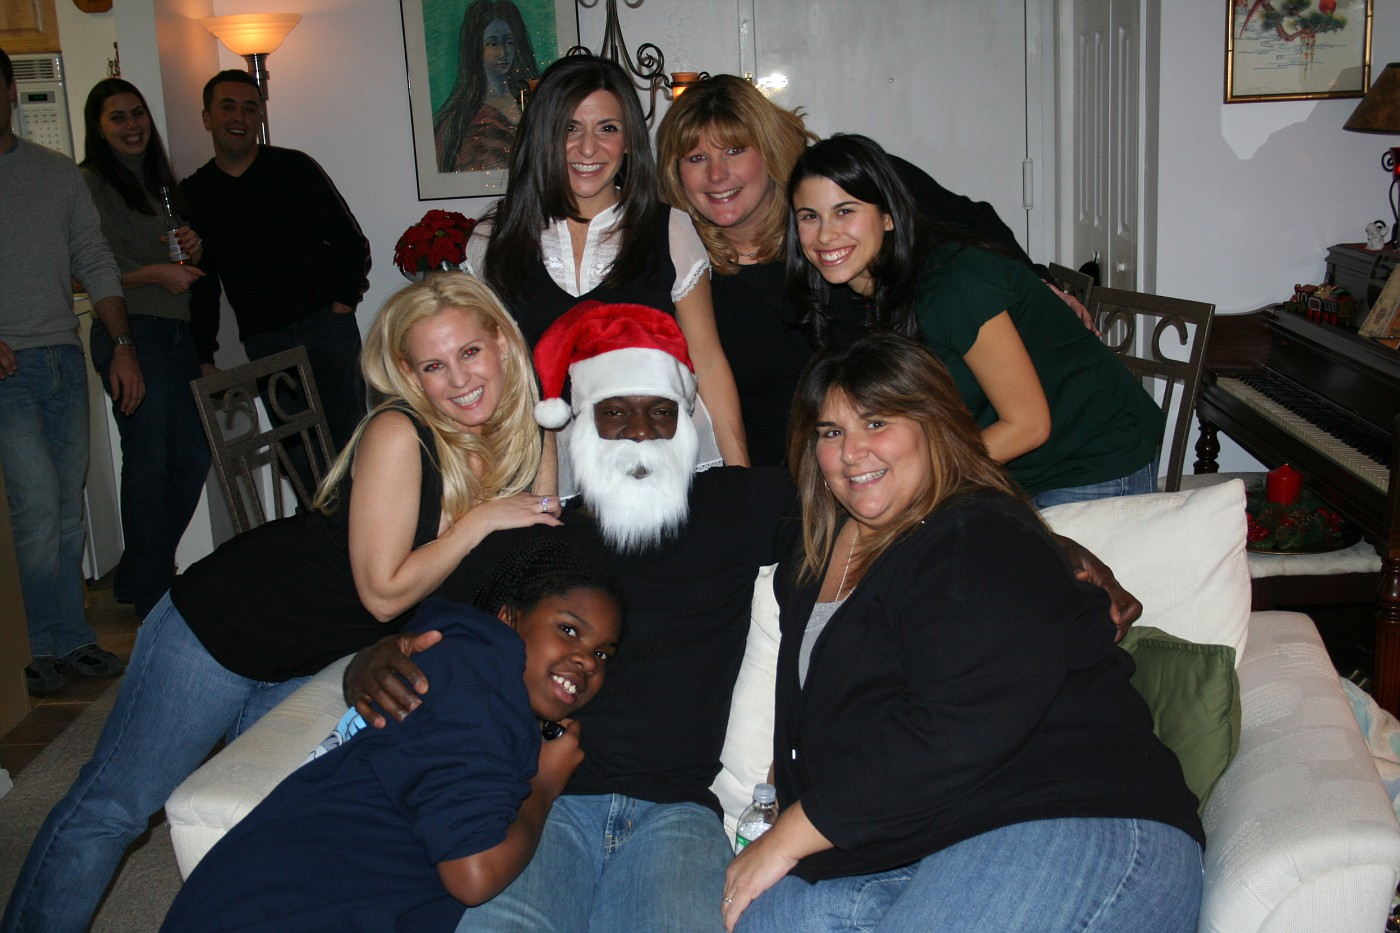 Chris Kringle and his posse!